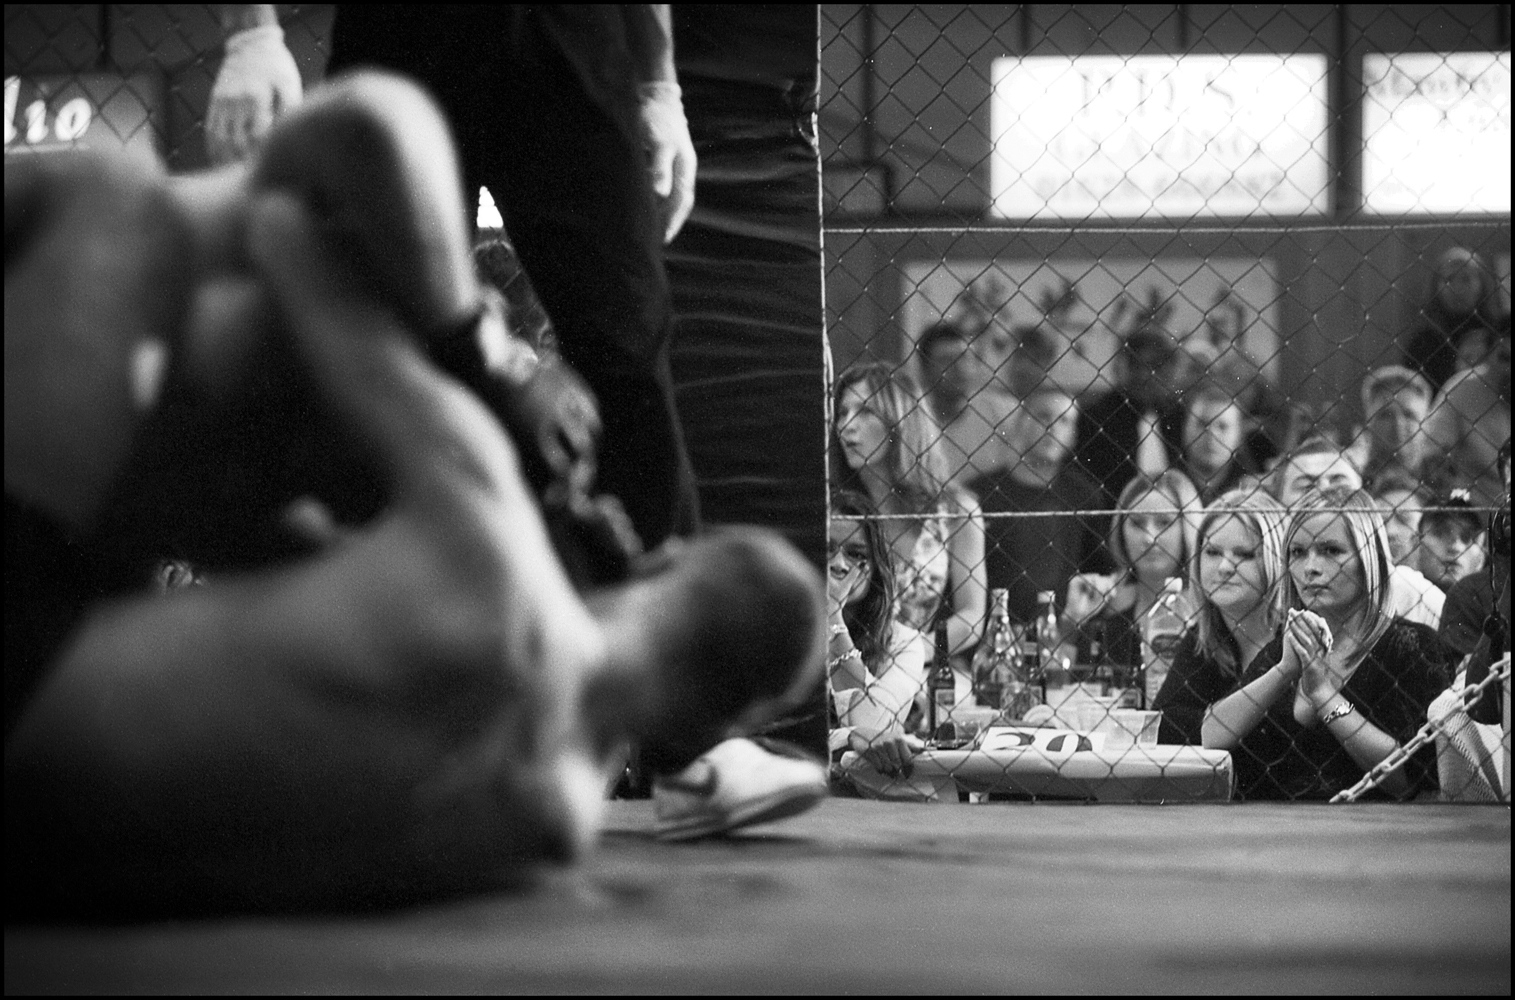 The meetings occur in different environments, from large sports halls to industrial ships, whatever with millions of followers worldwide.There are all kinds of fans, including many women, sometimes couples or friends of fighters.